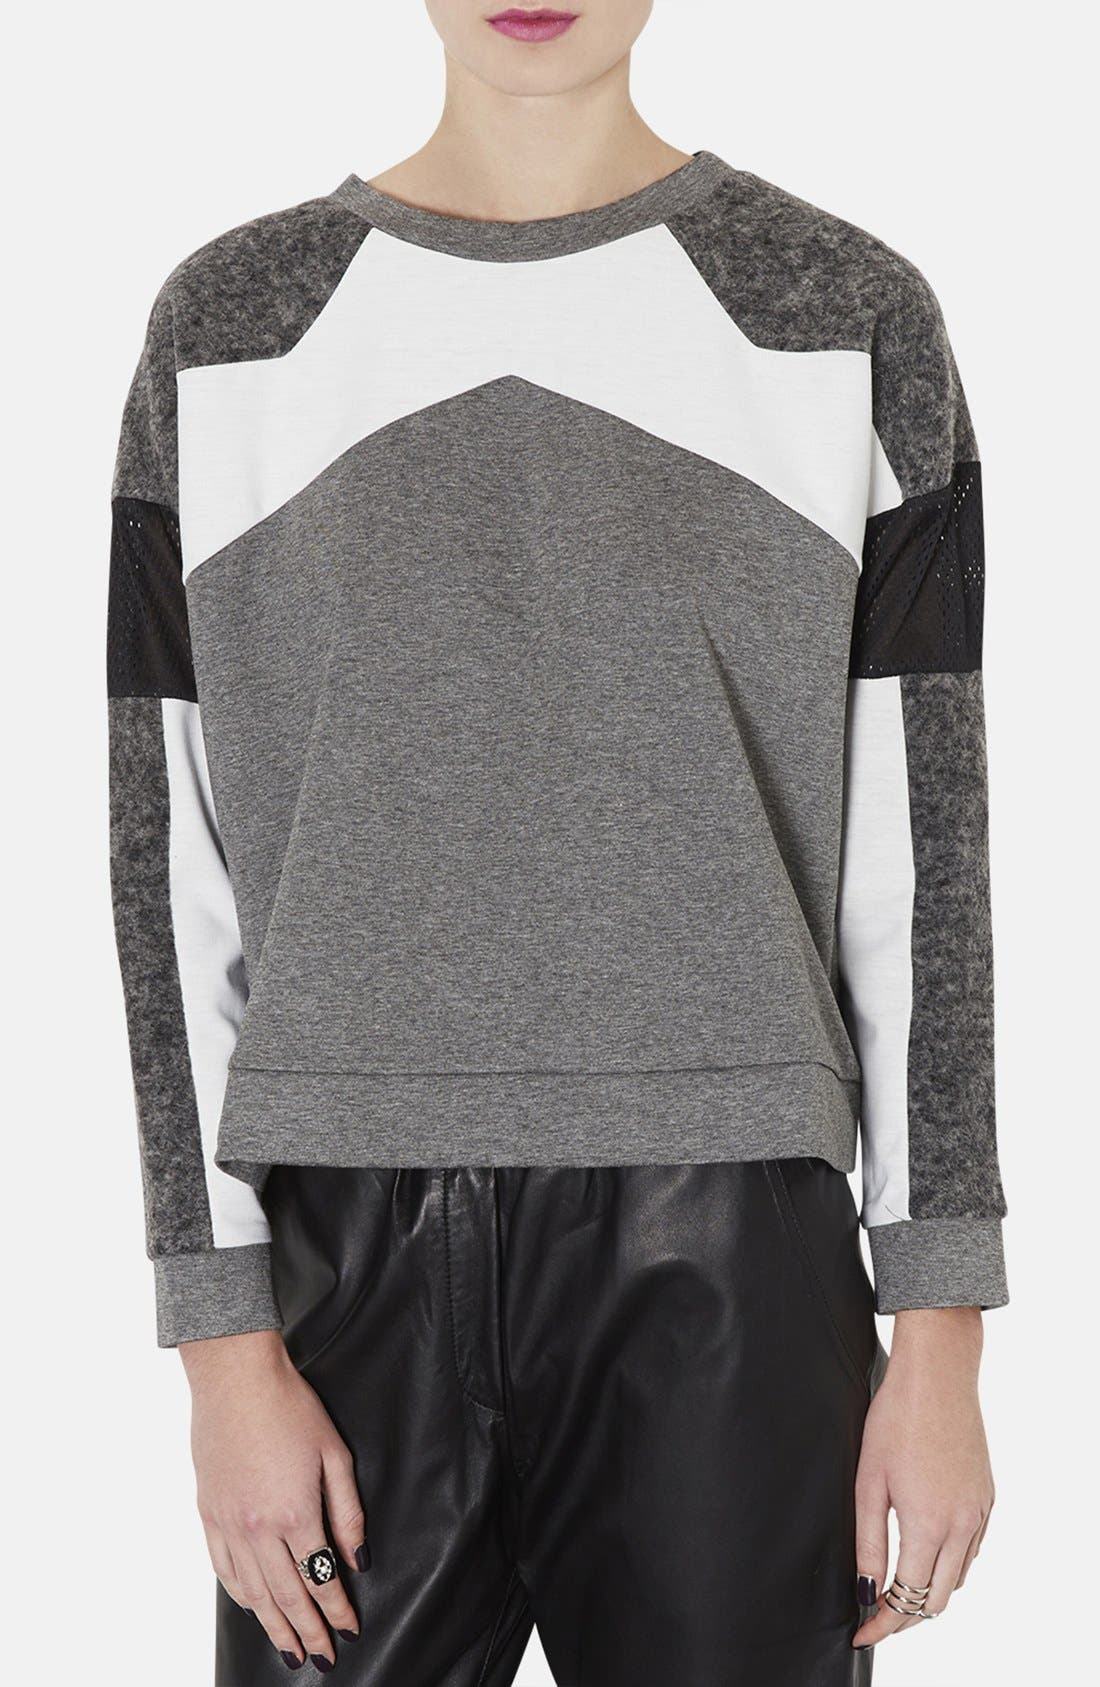 Alternate Image 1 Selected - Topshop Perforated Mixed Media Sweatshirt